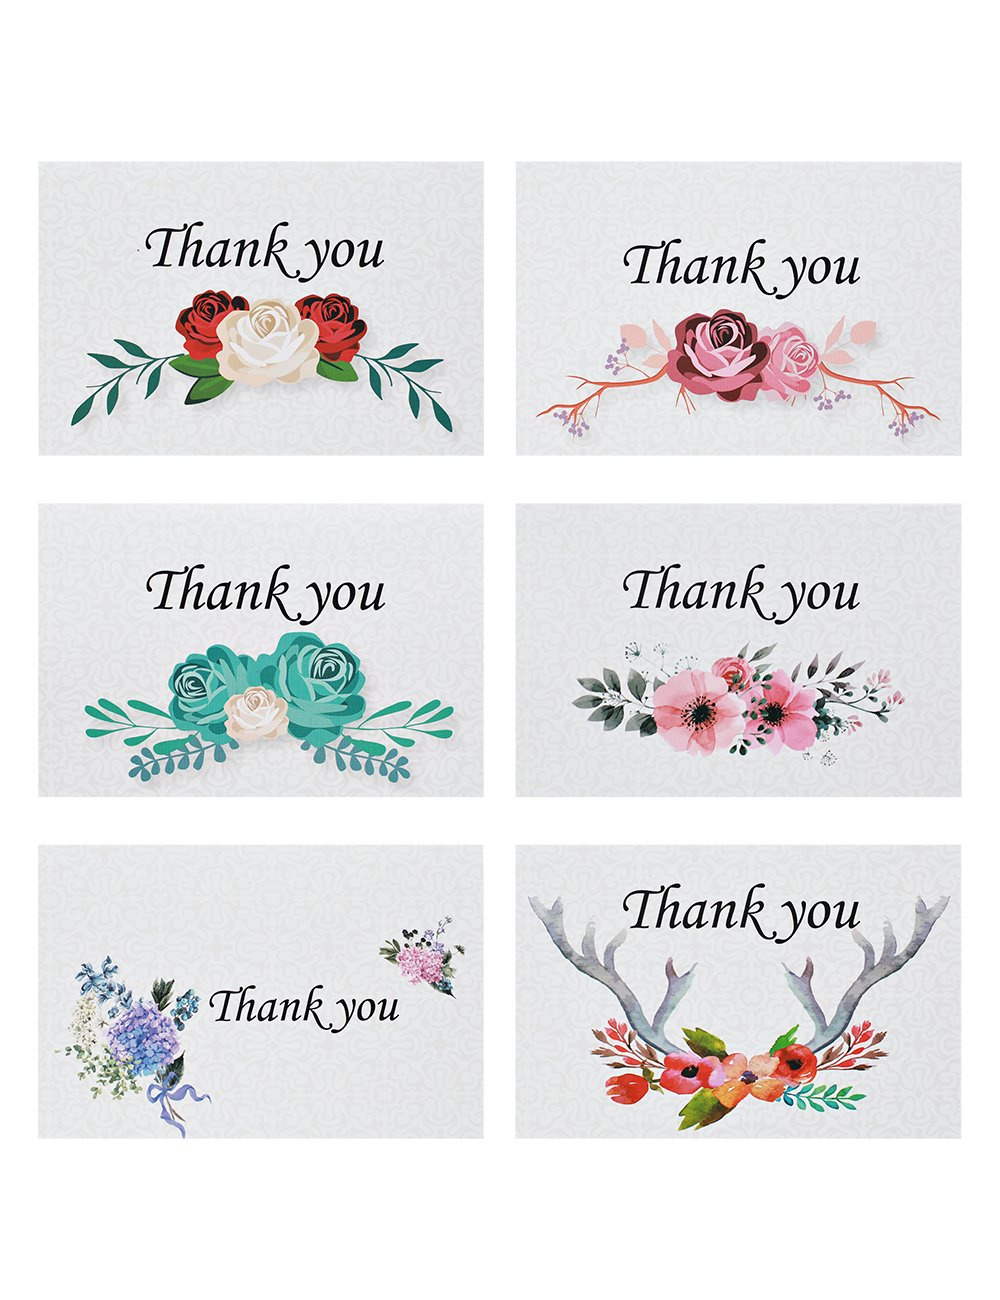 Yitai 48 Folded Thank You Cards Floral Flower Greeting Cards Notes